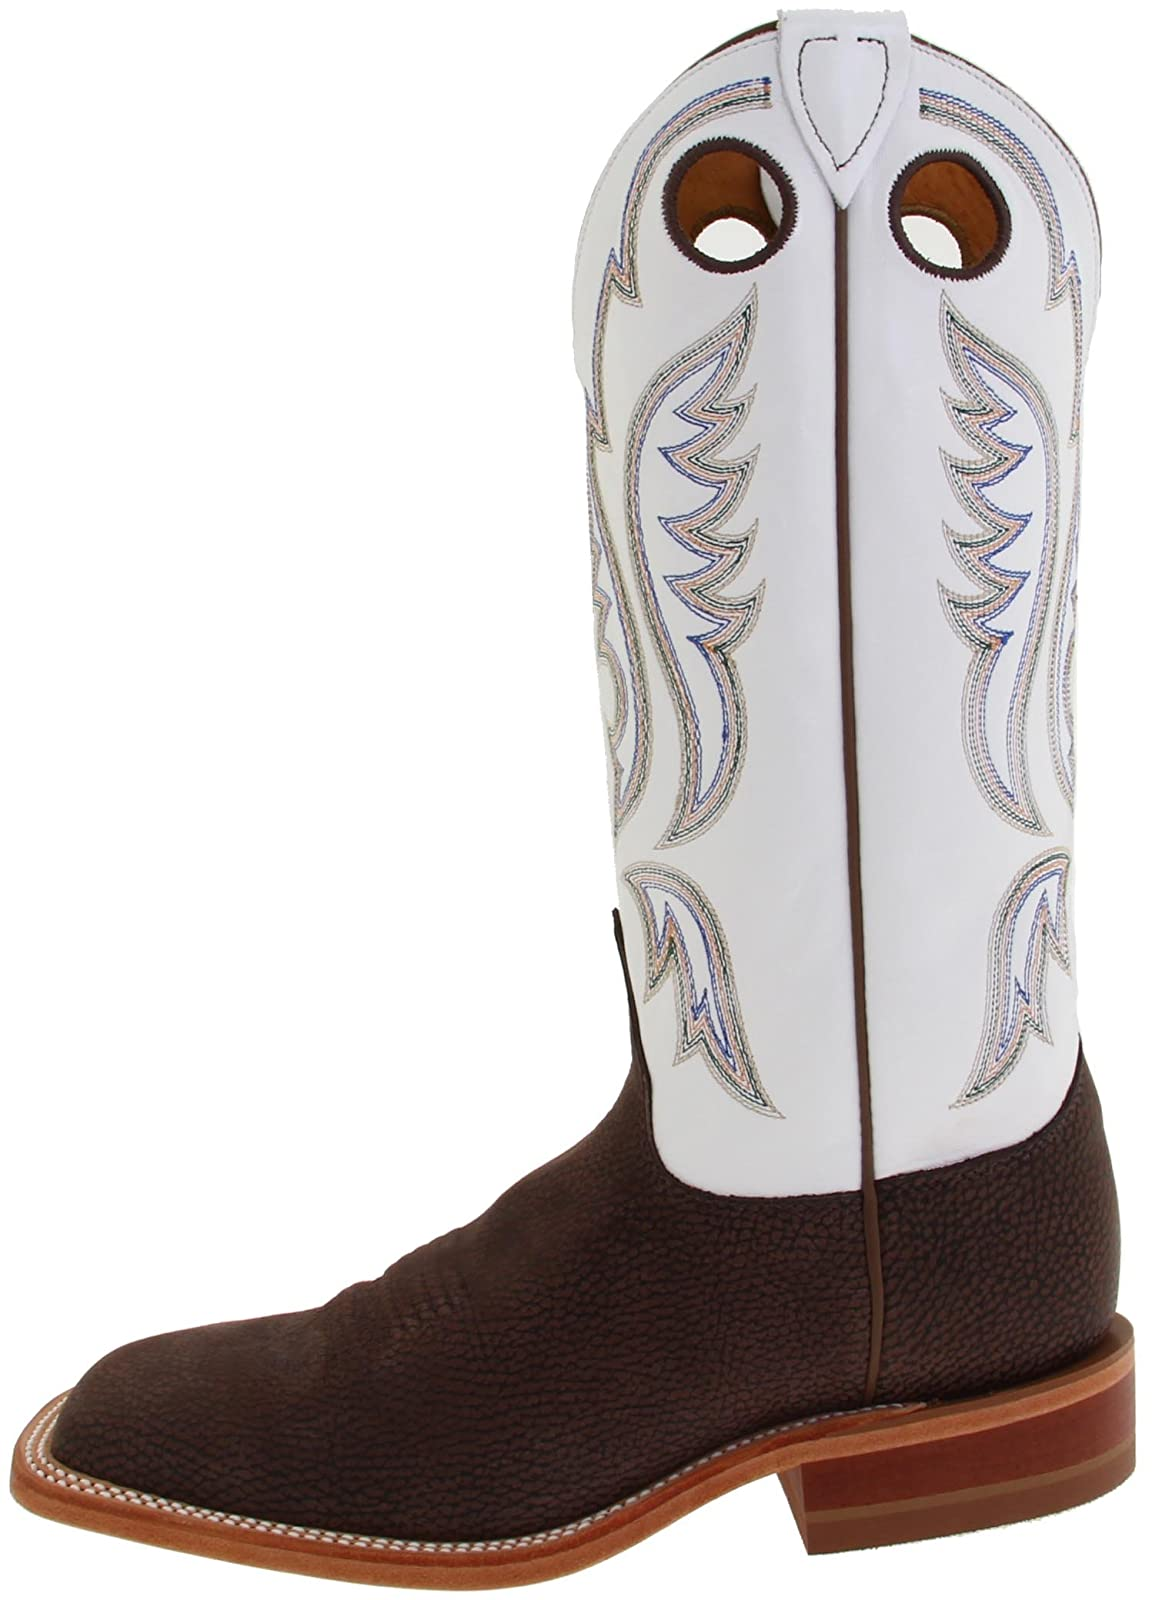 Justin Boots Men's U.S.A. Chocolate Bisonte/White Classic - 5